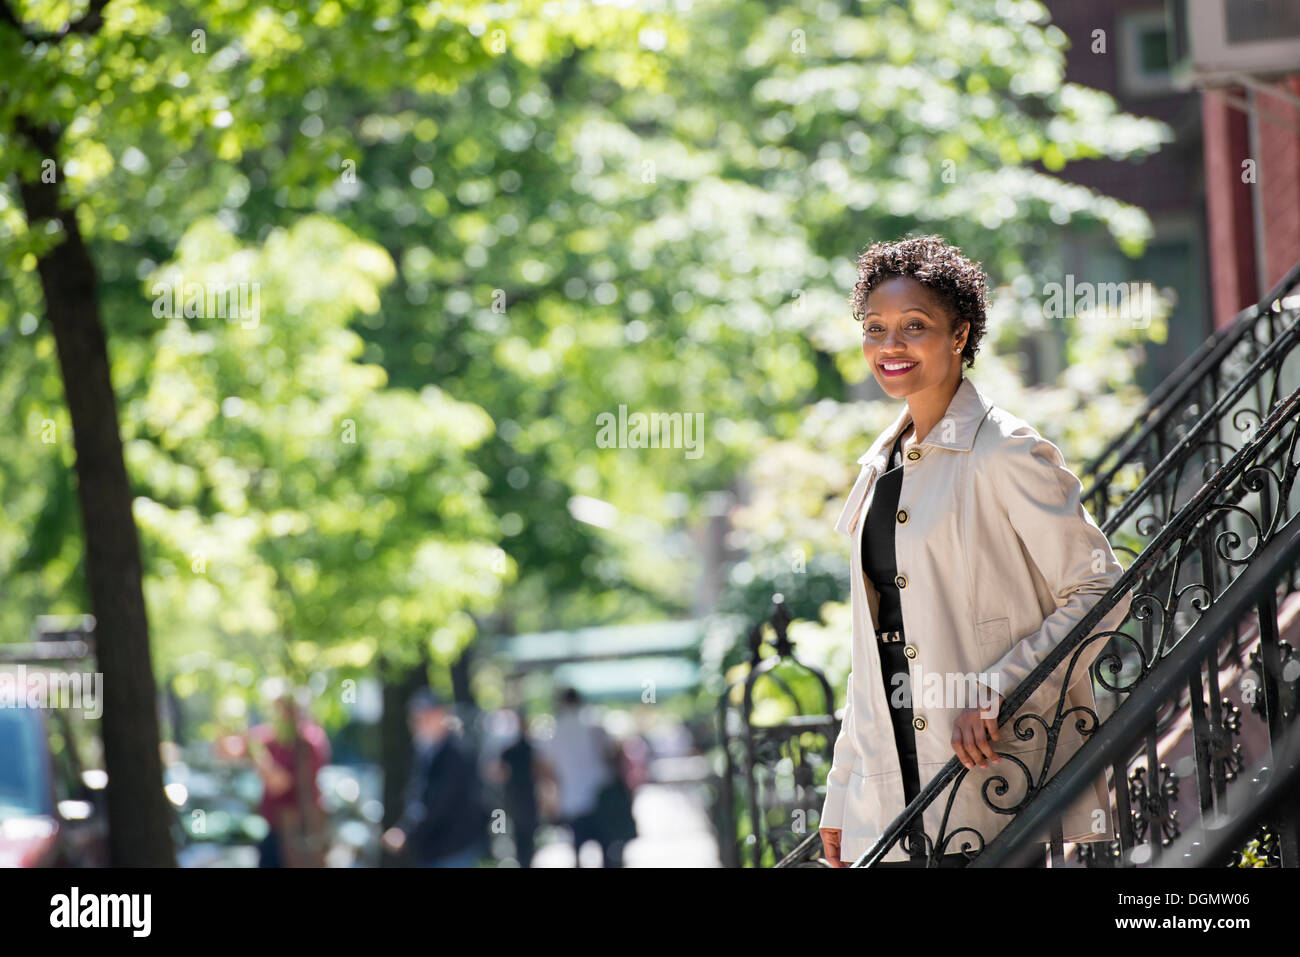 City. A woman walking down steps outside a town house. - Stock Image